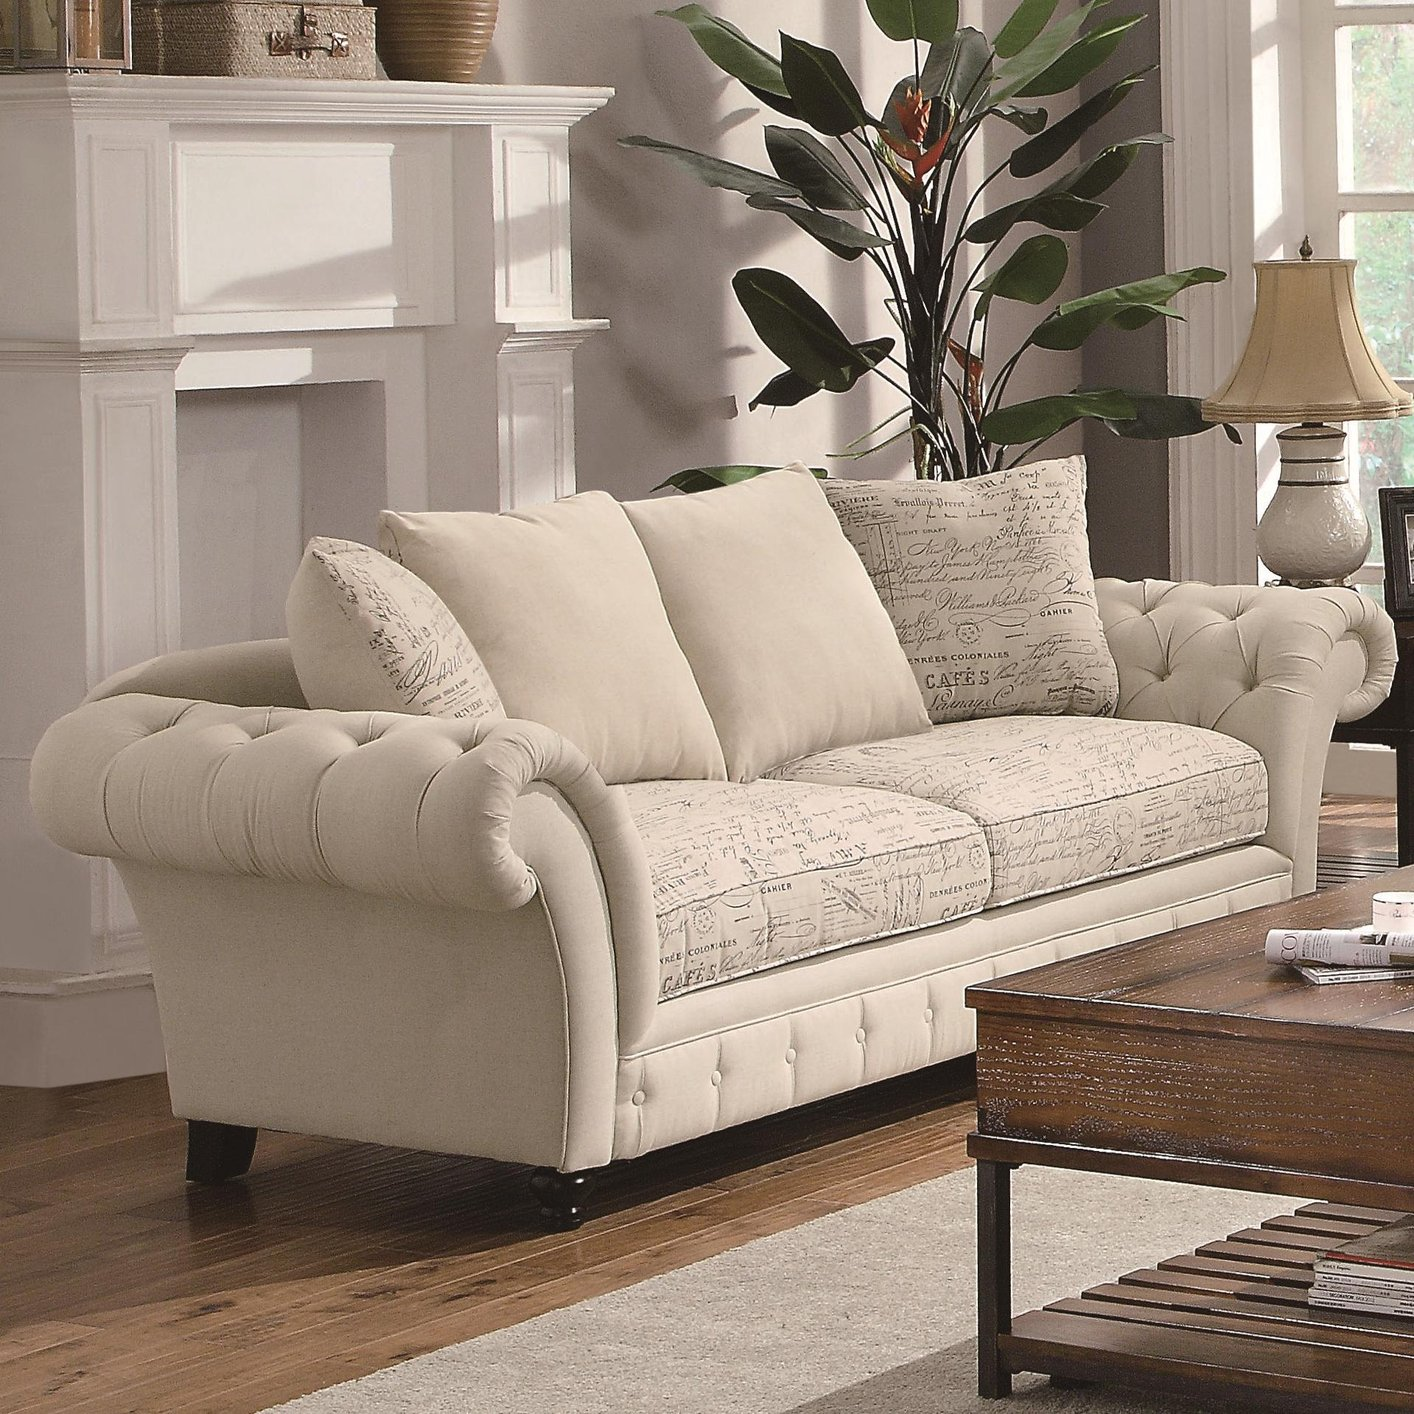 Delicieux Willow Beige Fabric Sofa